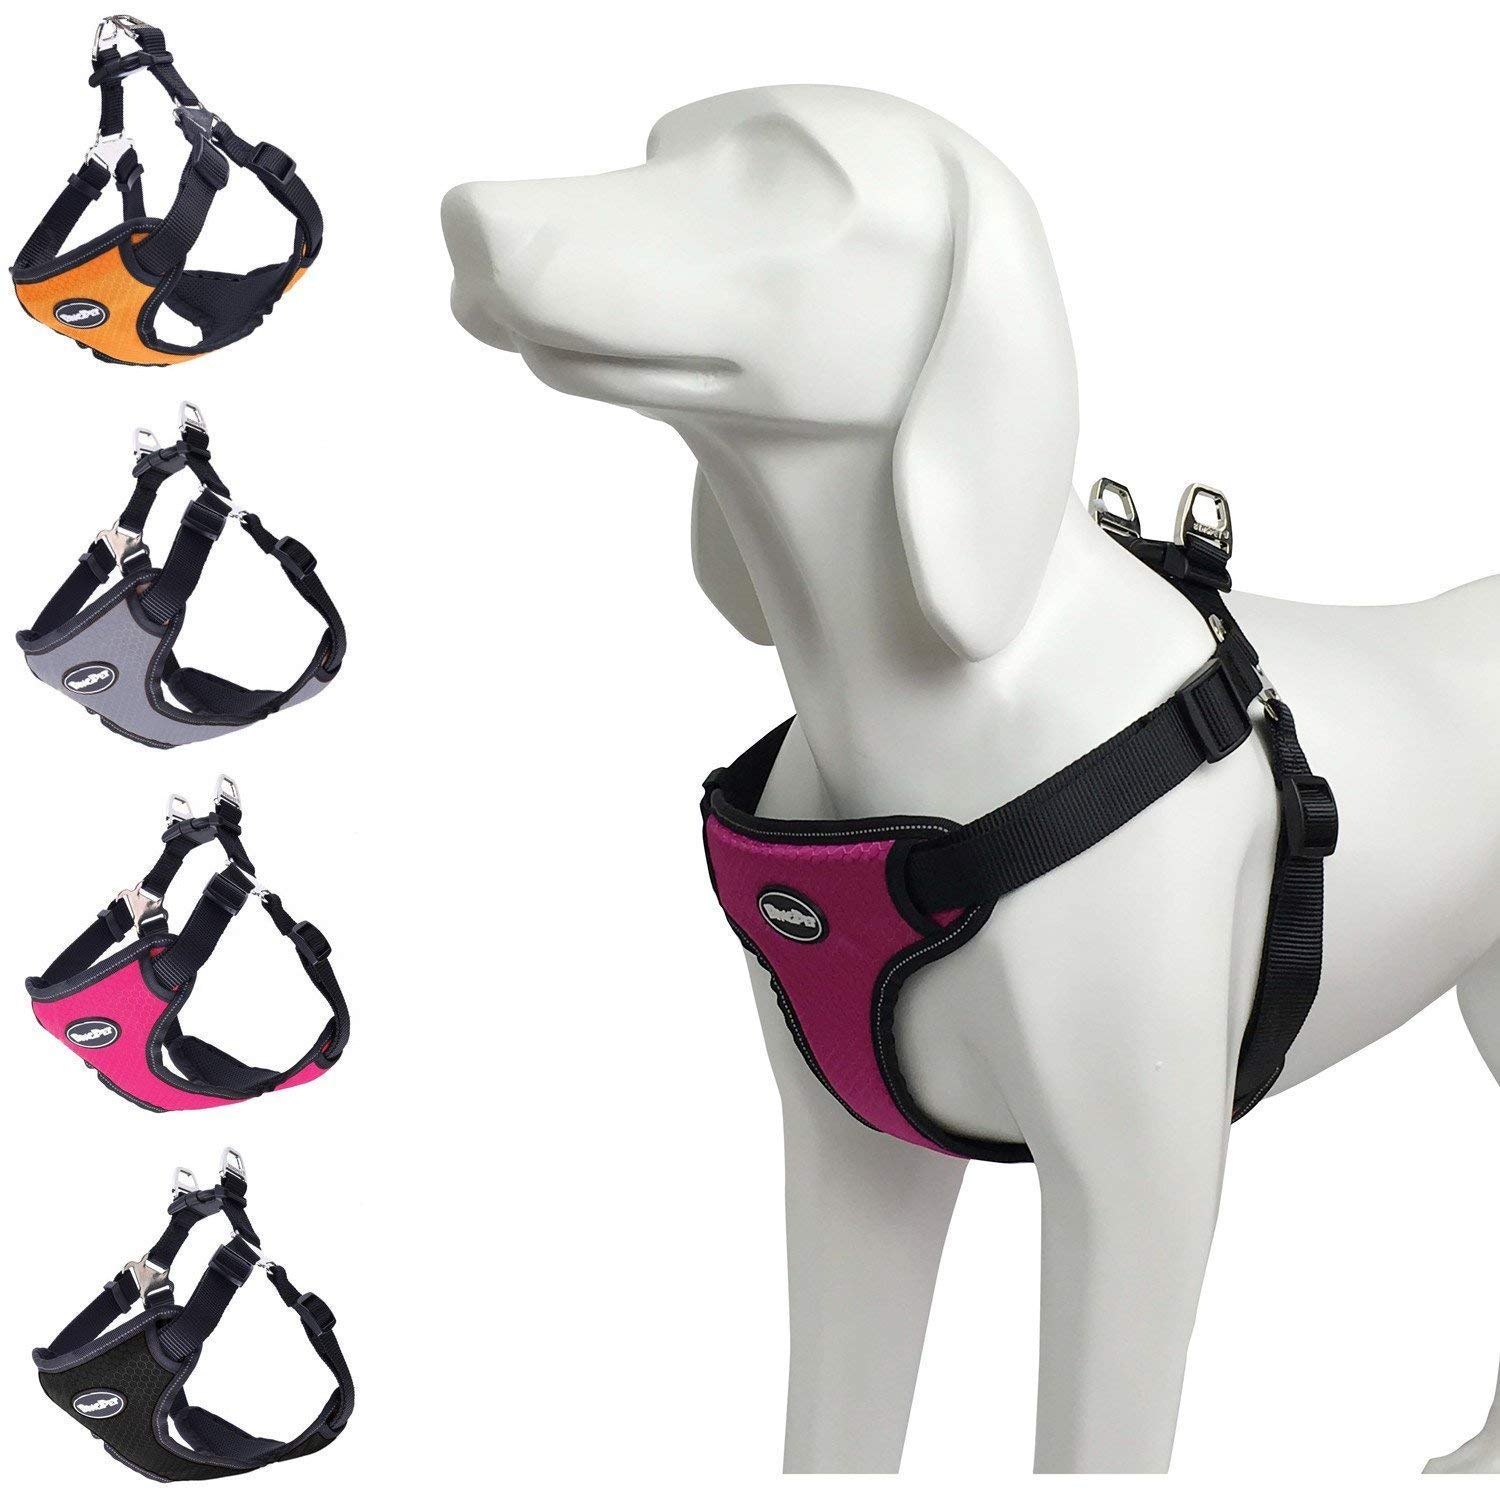 Pink M Pink M BINGPET No Pull Dog Harness Reflective for Pet Puppy Freedom Walking Medium Pink